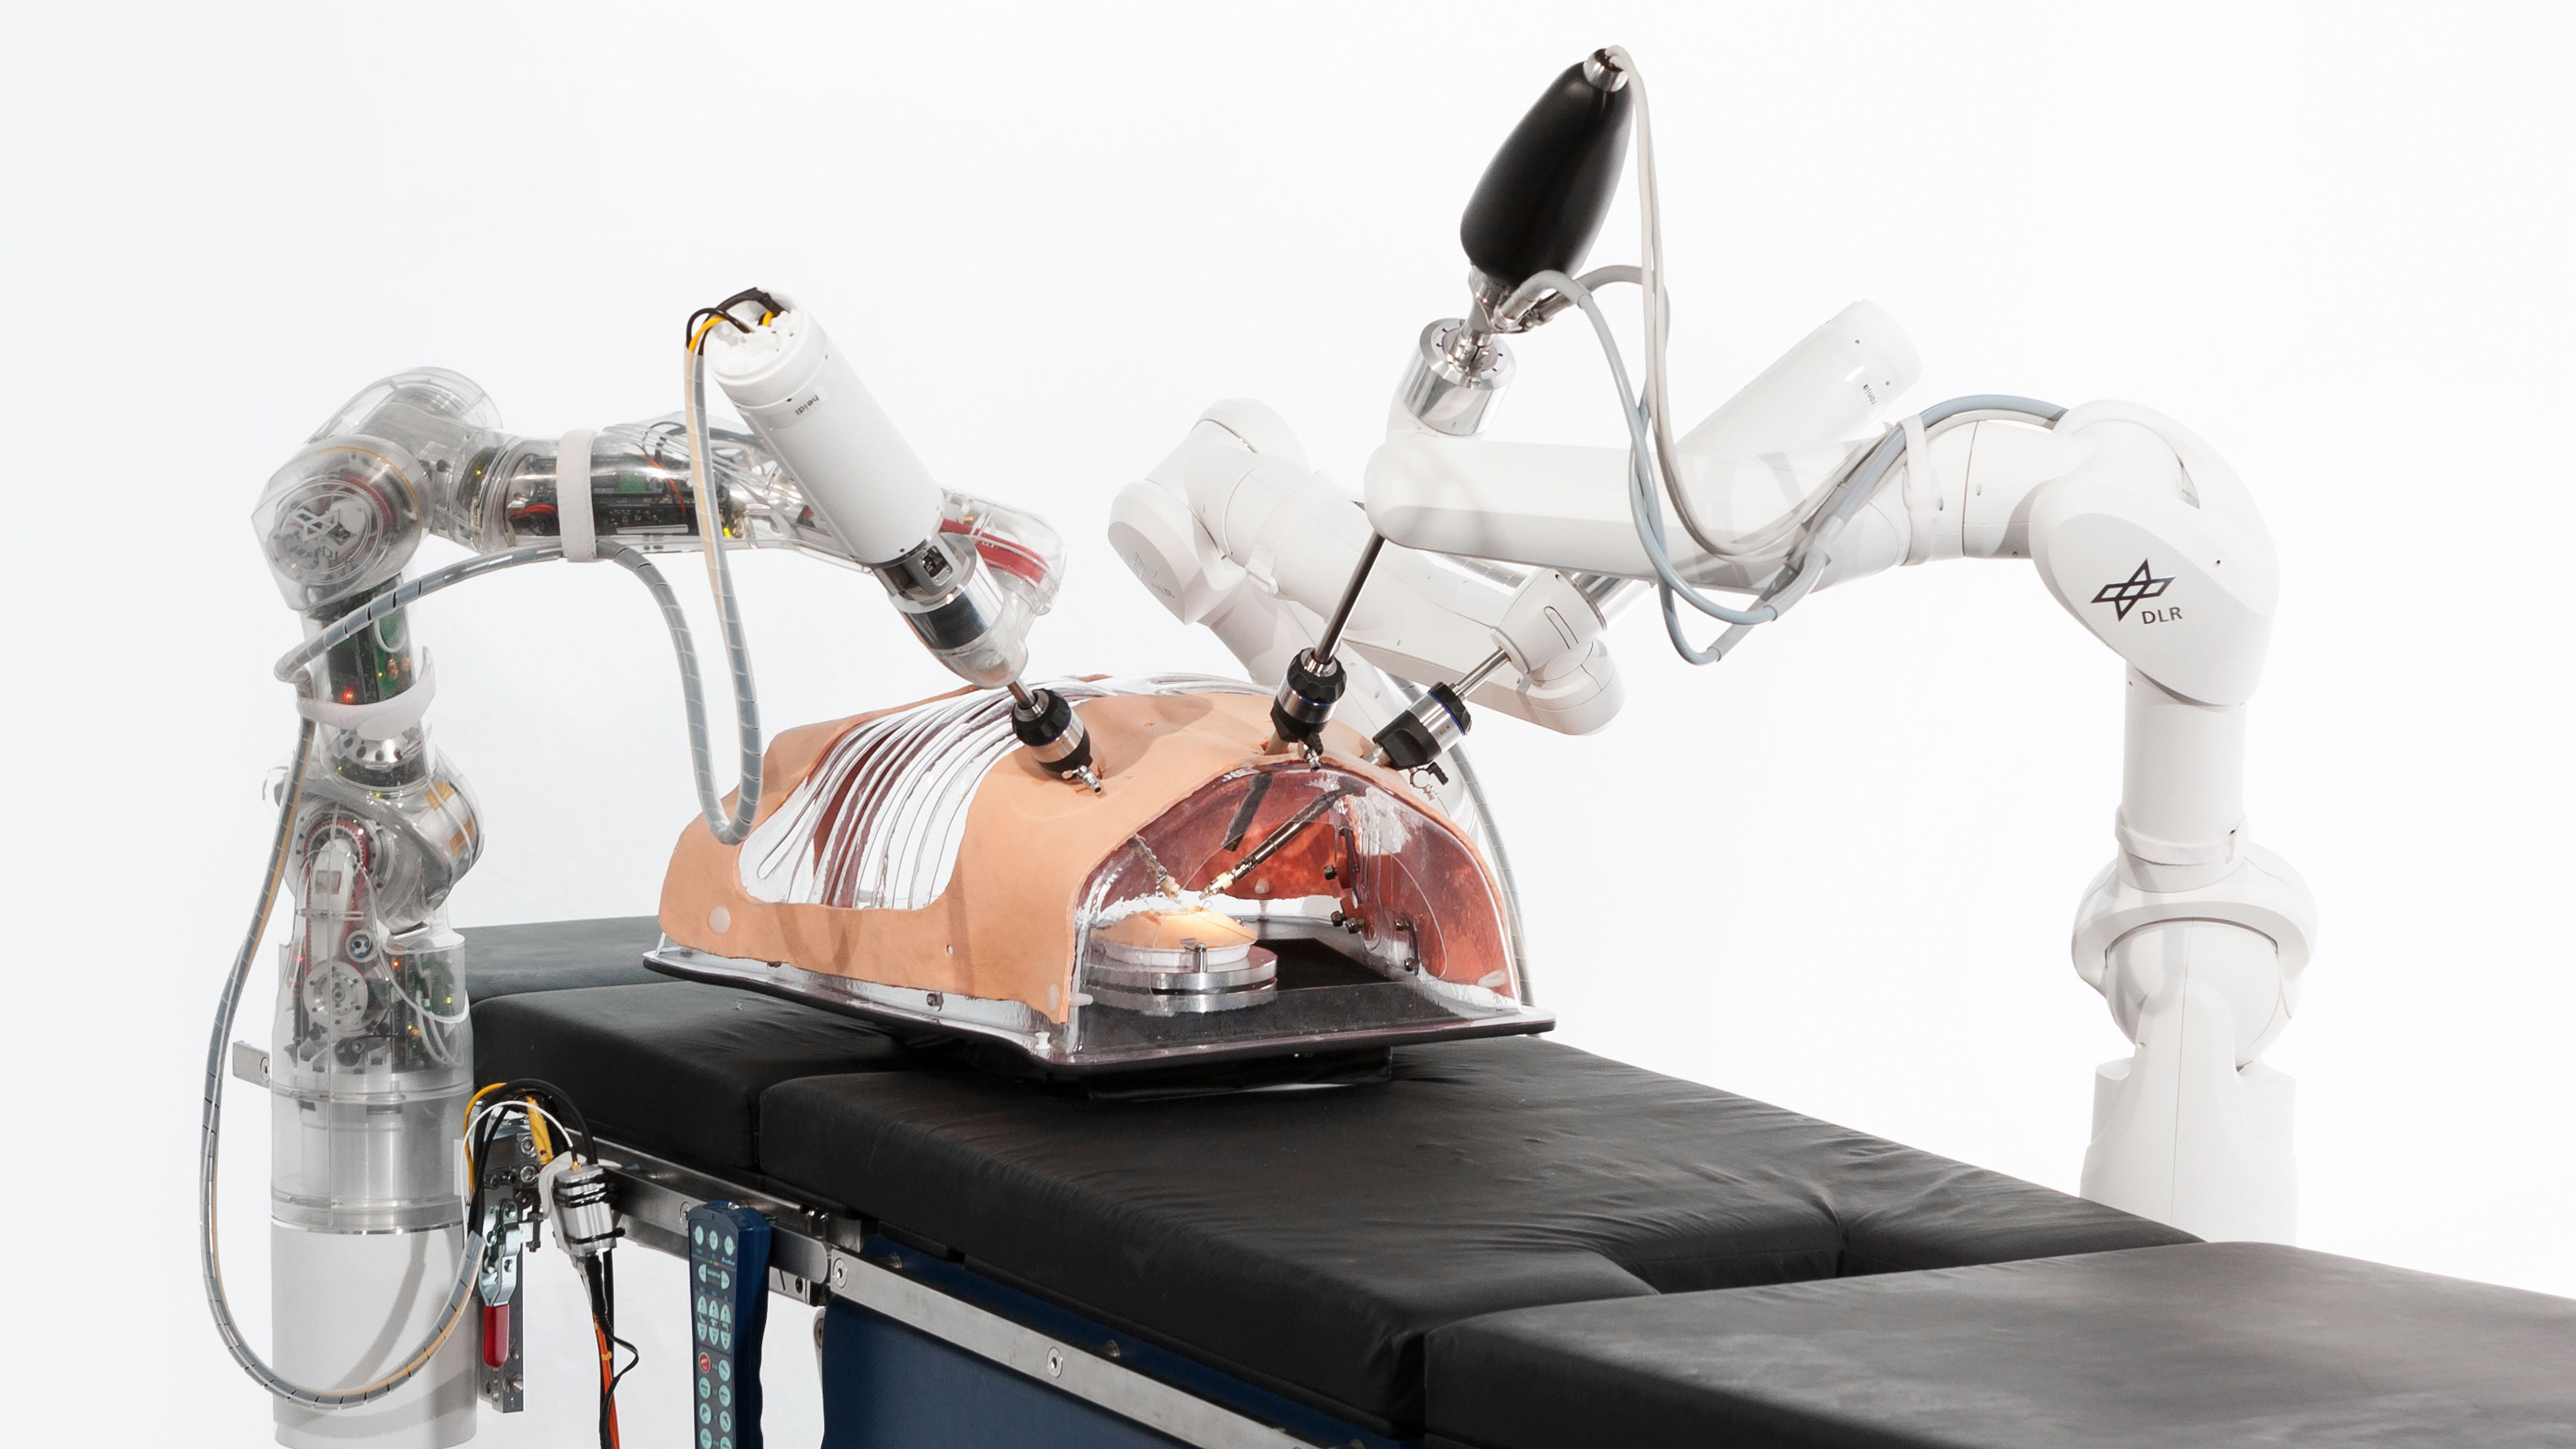 Use Of Robot For Medical And